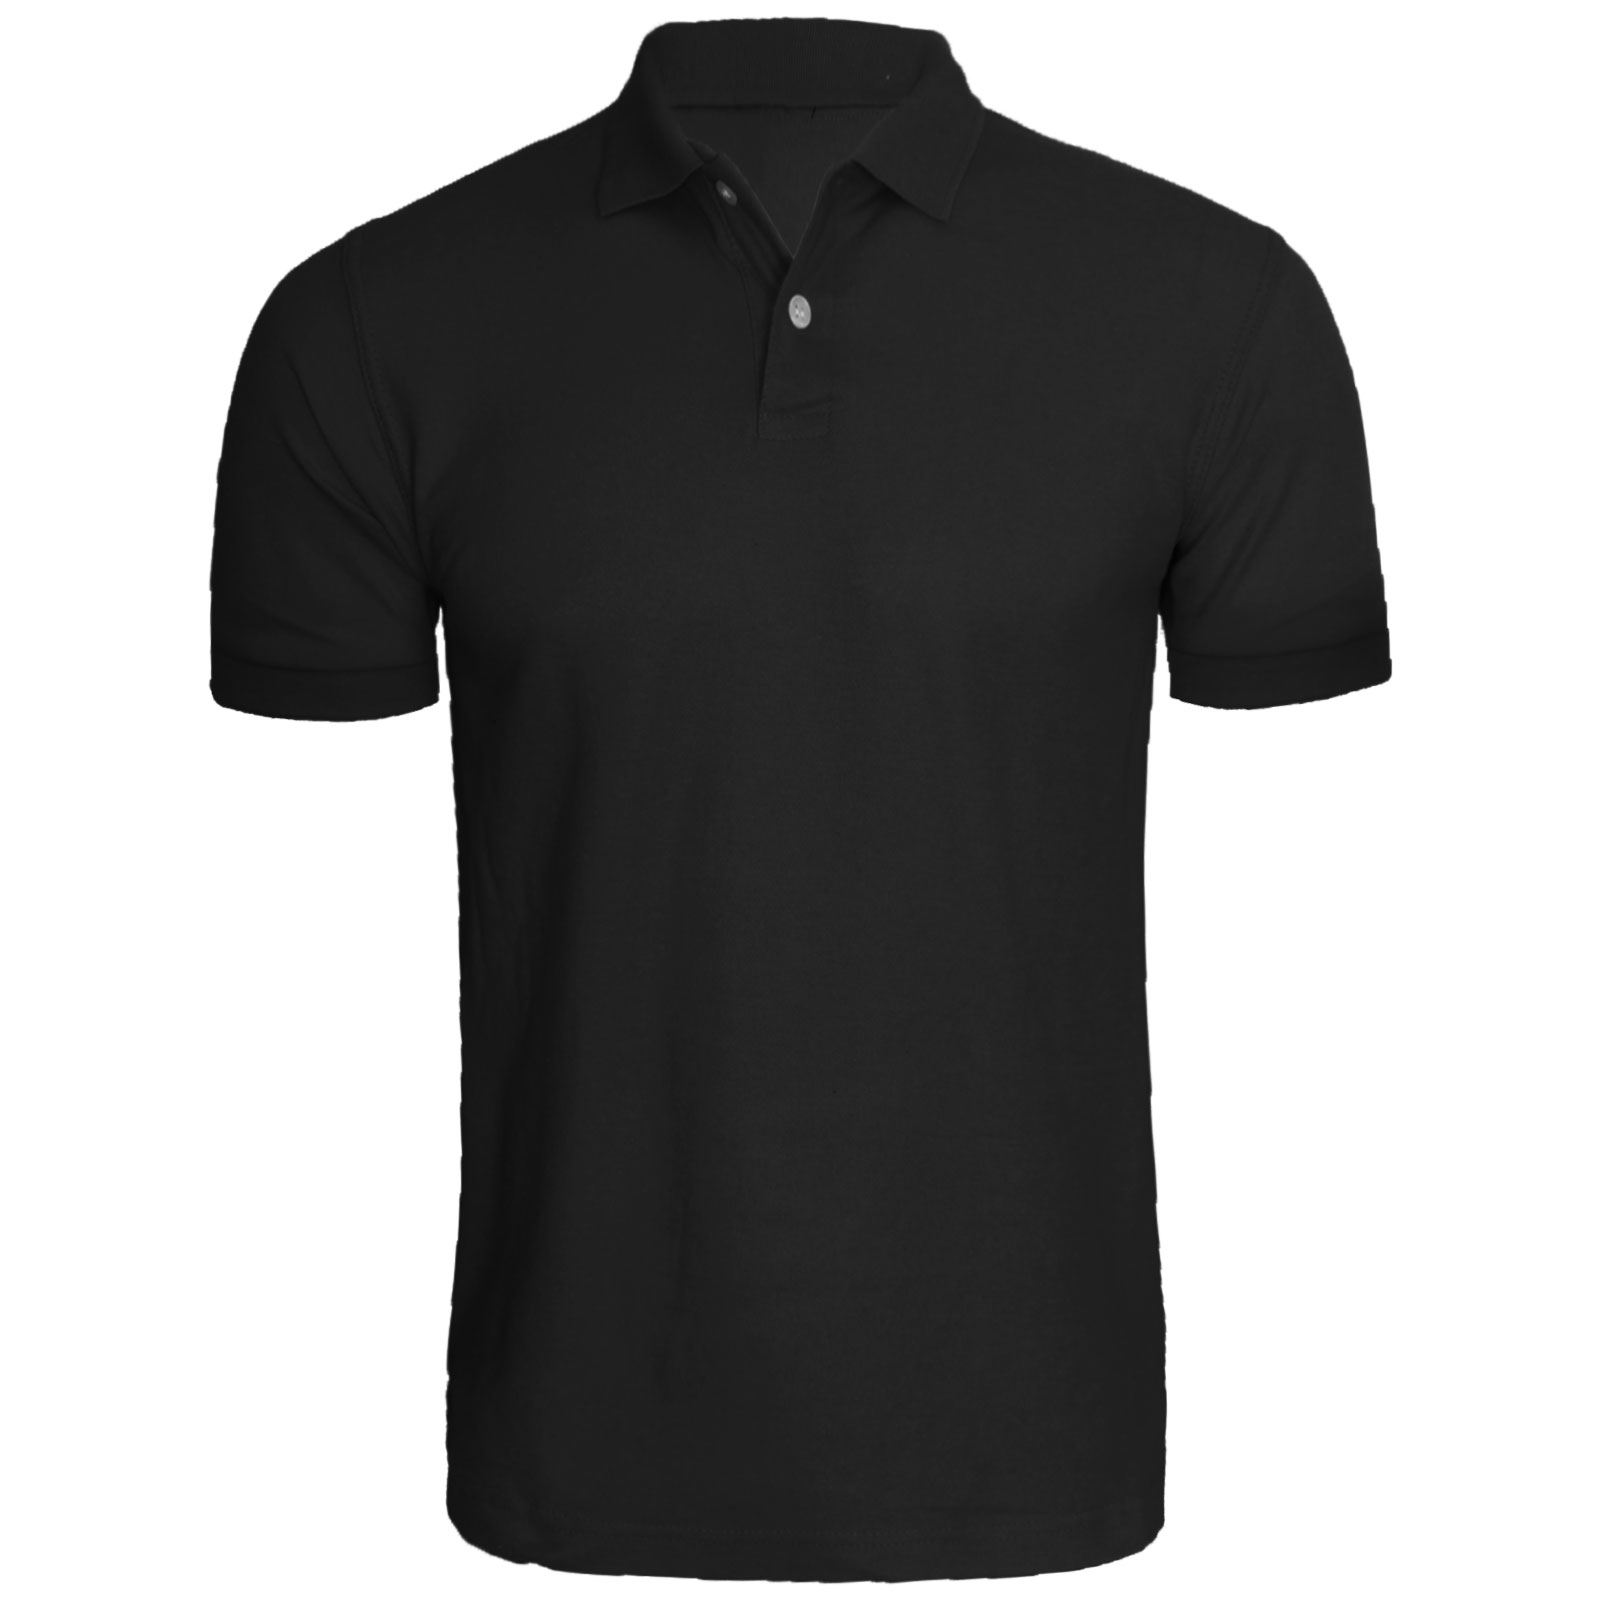 New mens short sleeve plain polo tshirt top golf shirt for Mens collared t shirts